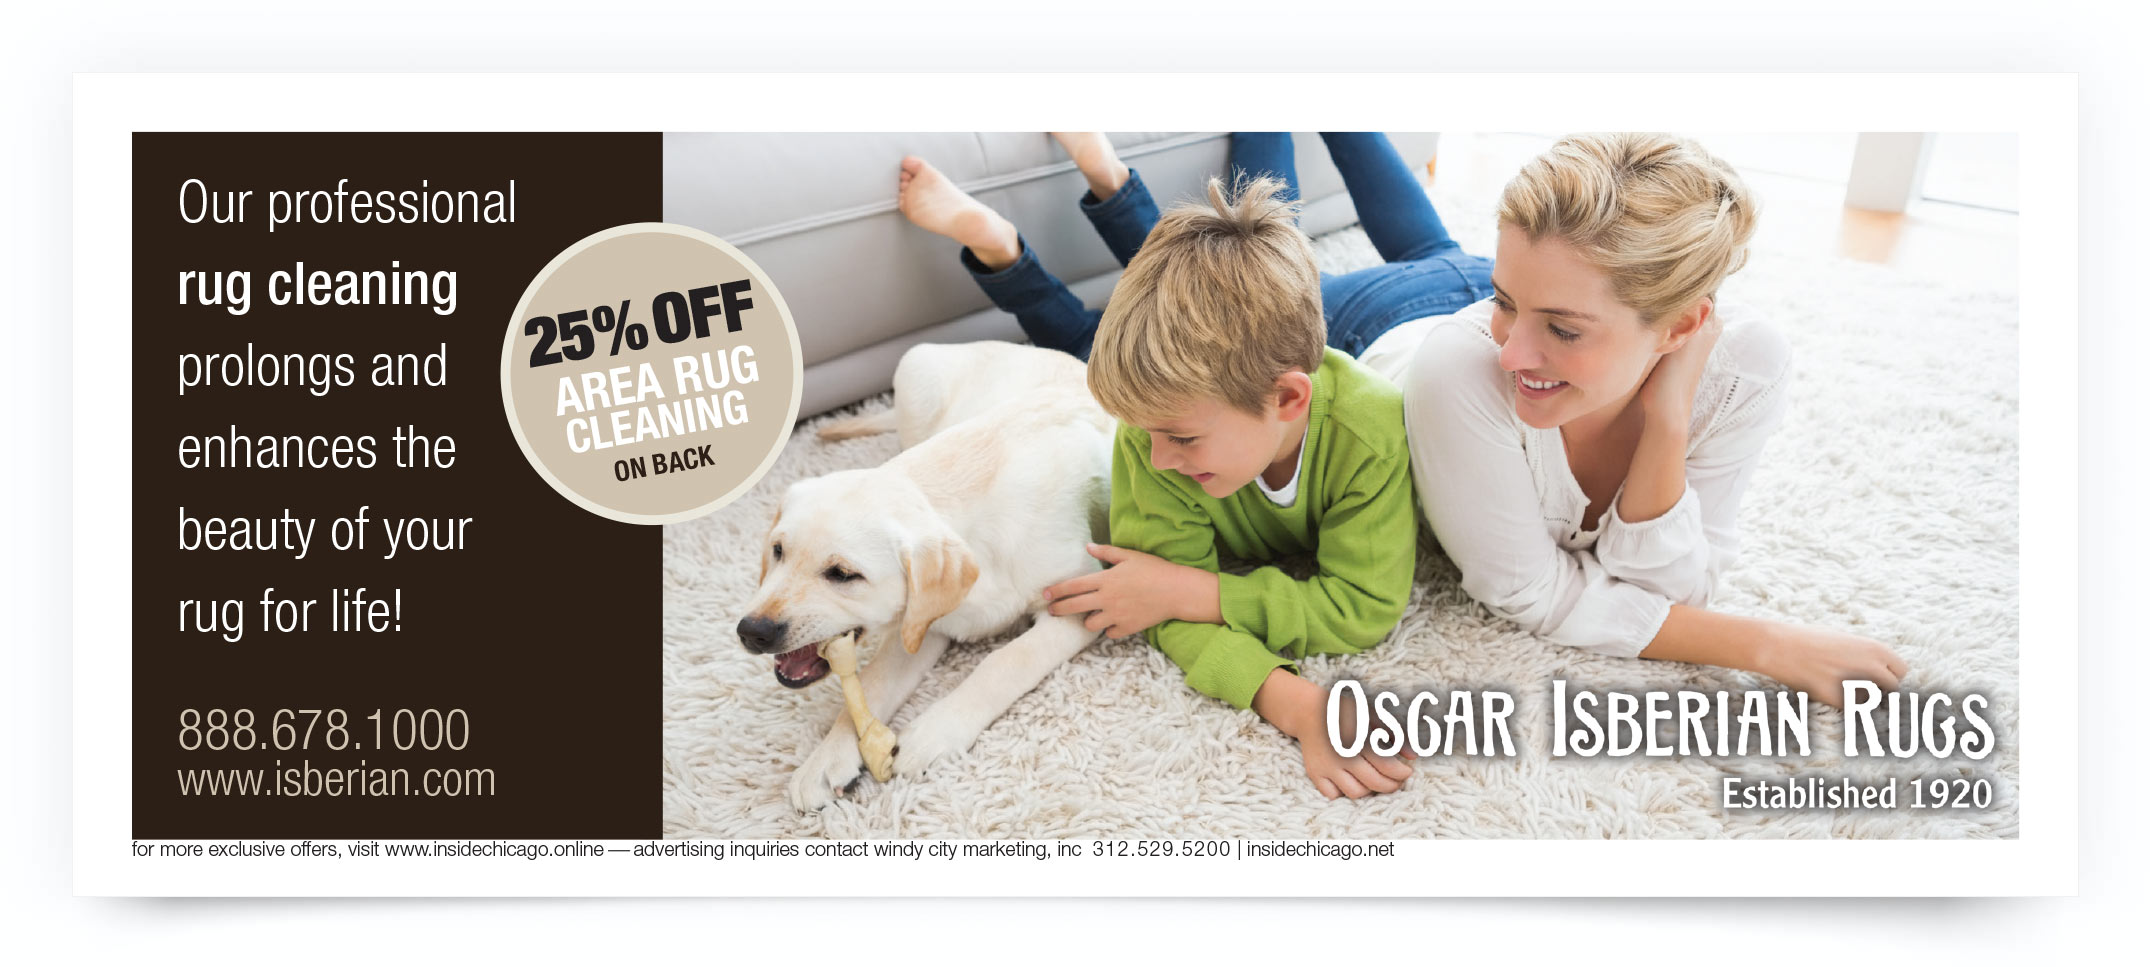 Oscar Isberian Rugs Chicago Coupon Intro